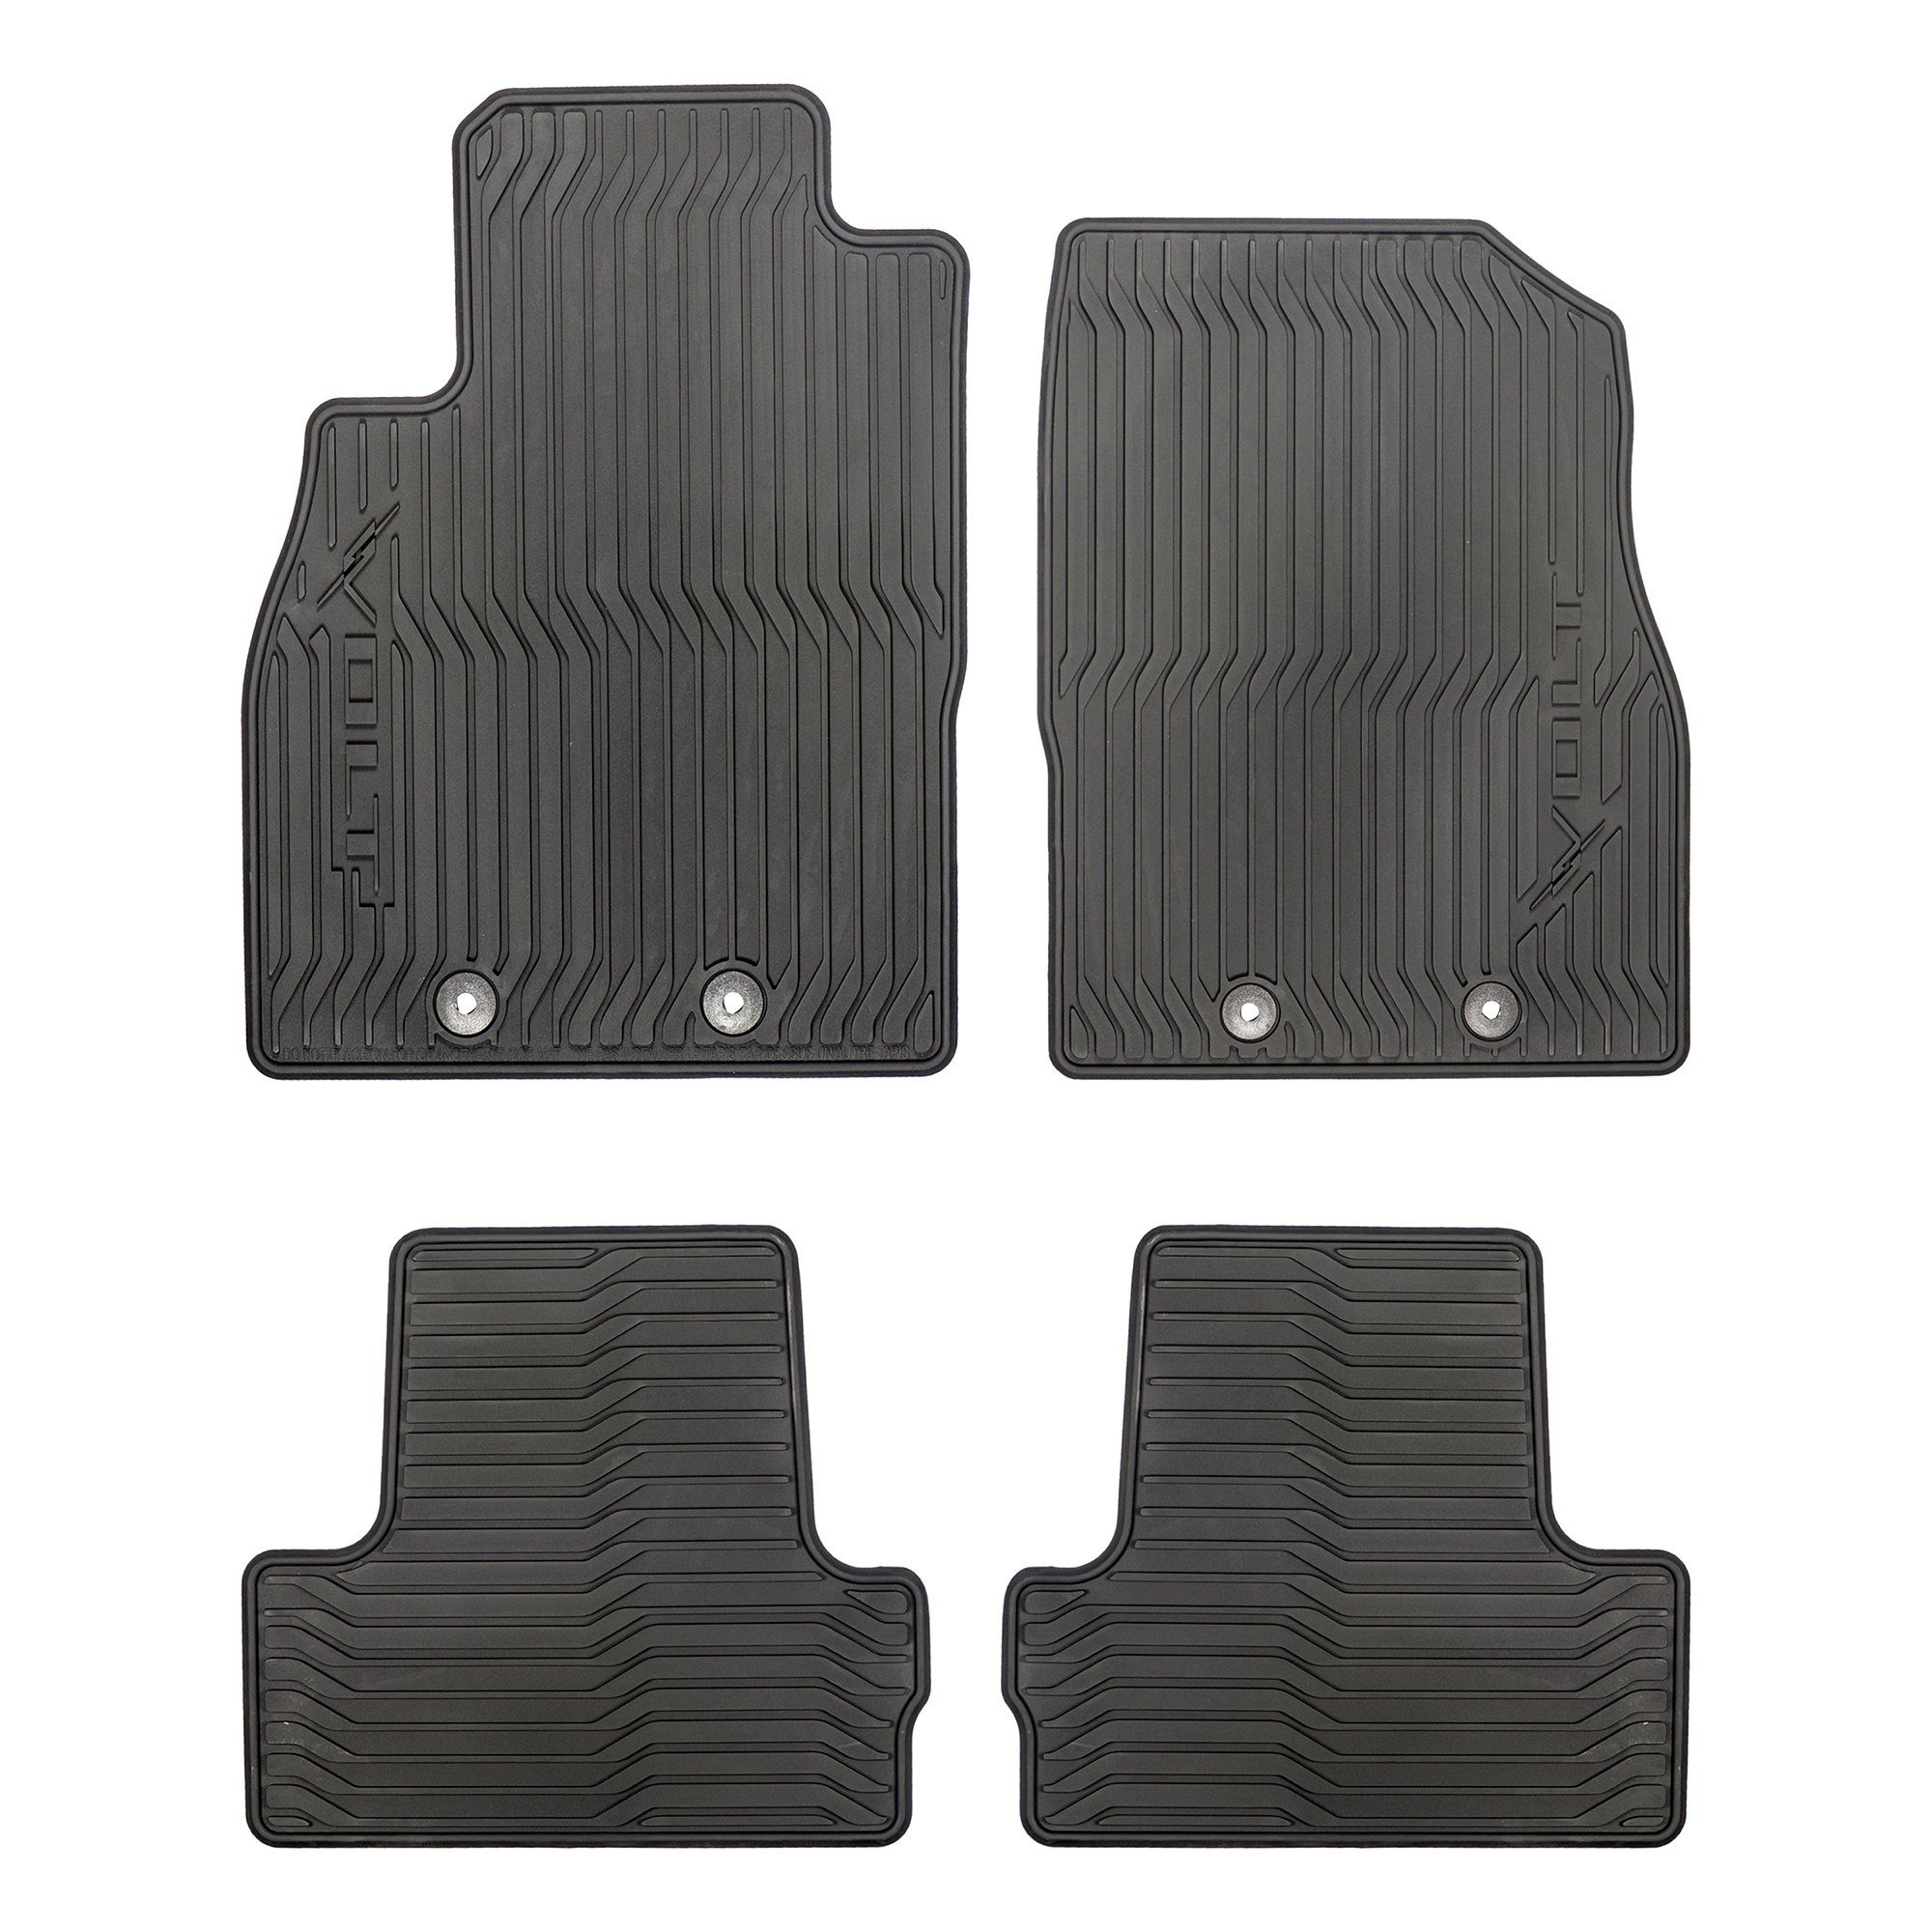 GM # 19243441 Floor Mats - Front and Rear Premium All Weather - Ebony with Volt Logo by Chevrolet (Image #1)